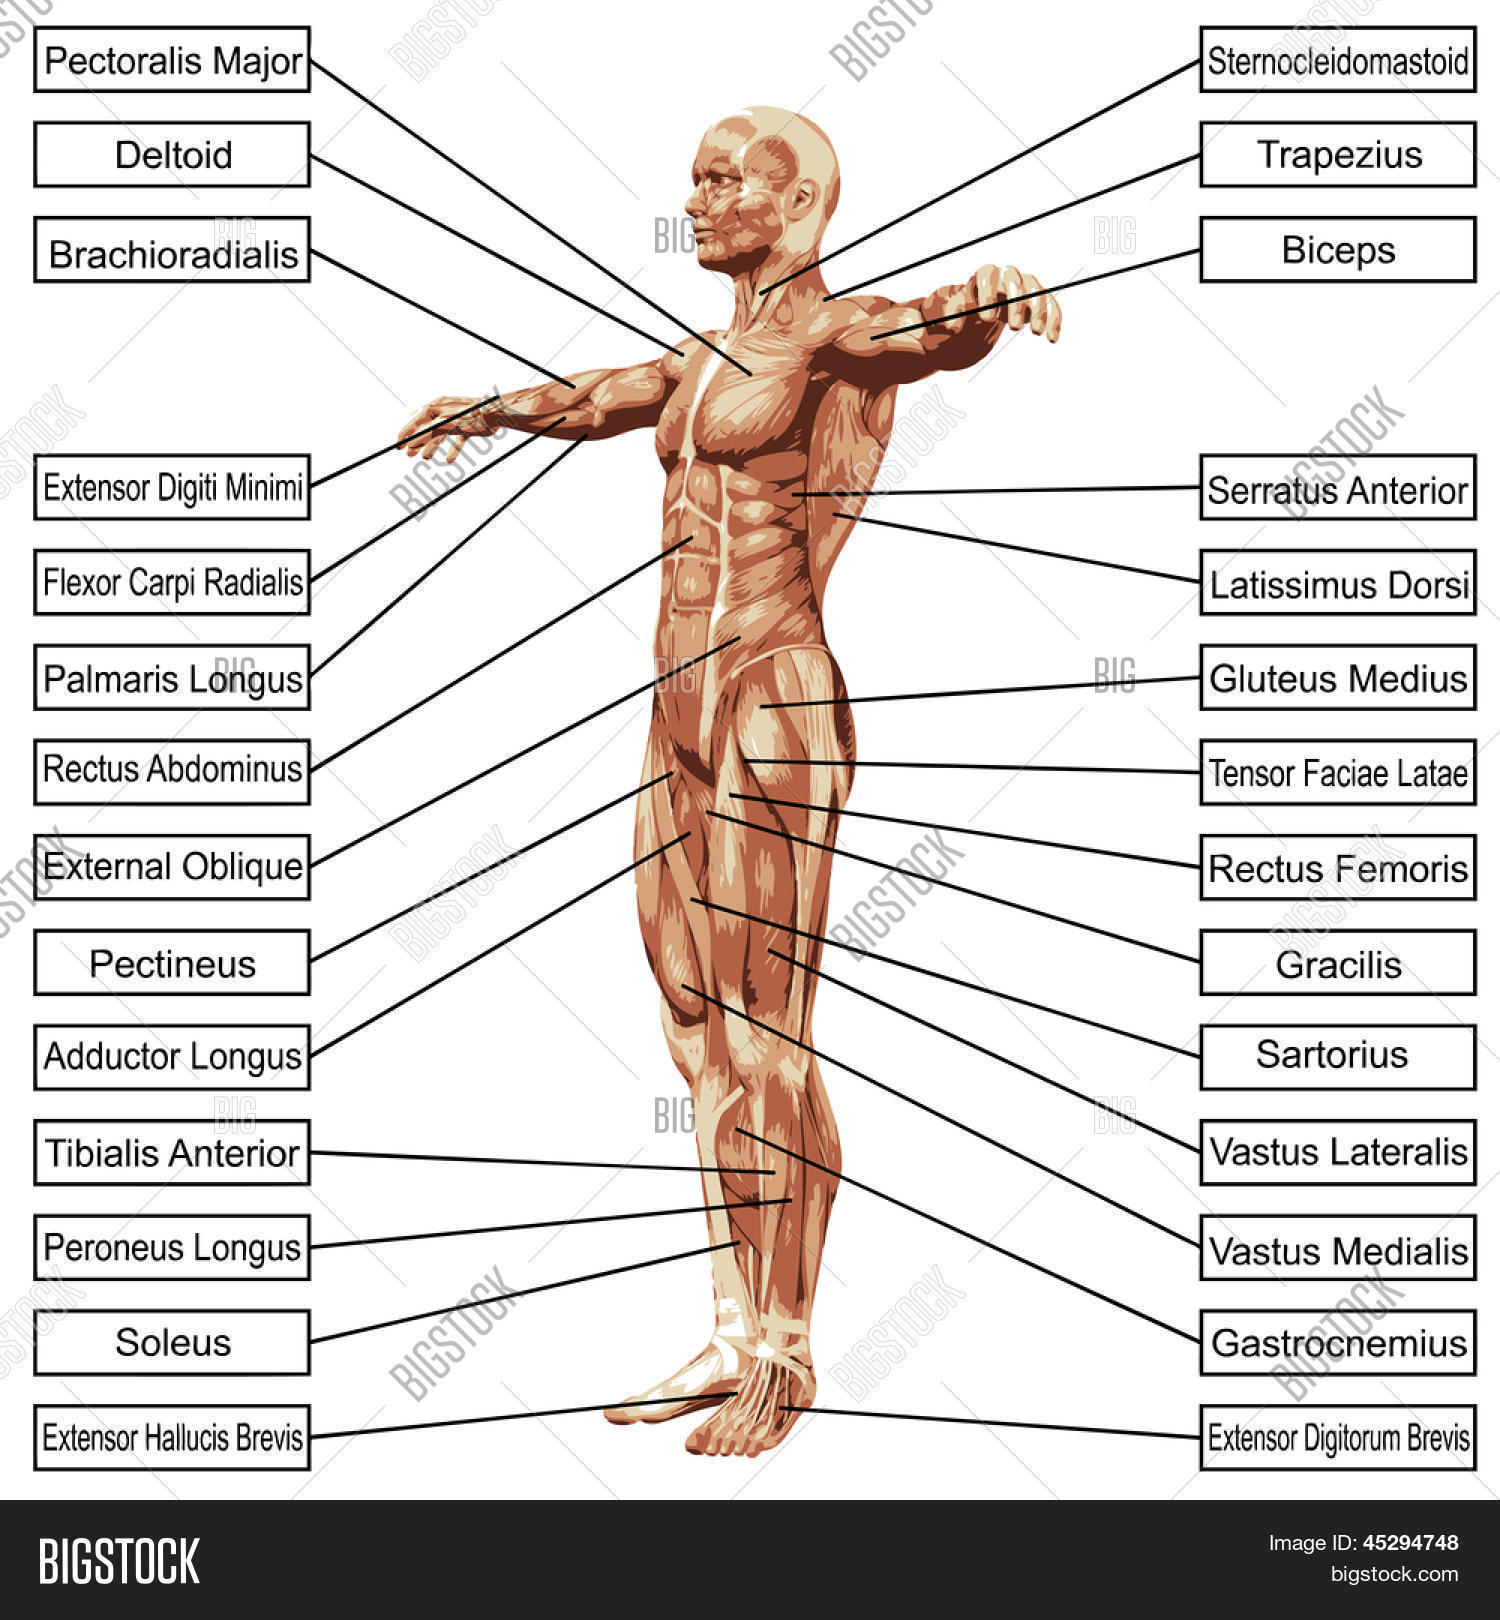 3D Male Human Anatomy Image & Photo (Free Trial) | Bigstock